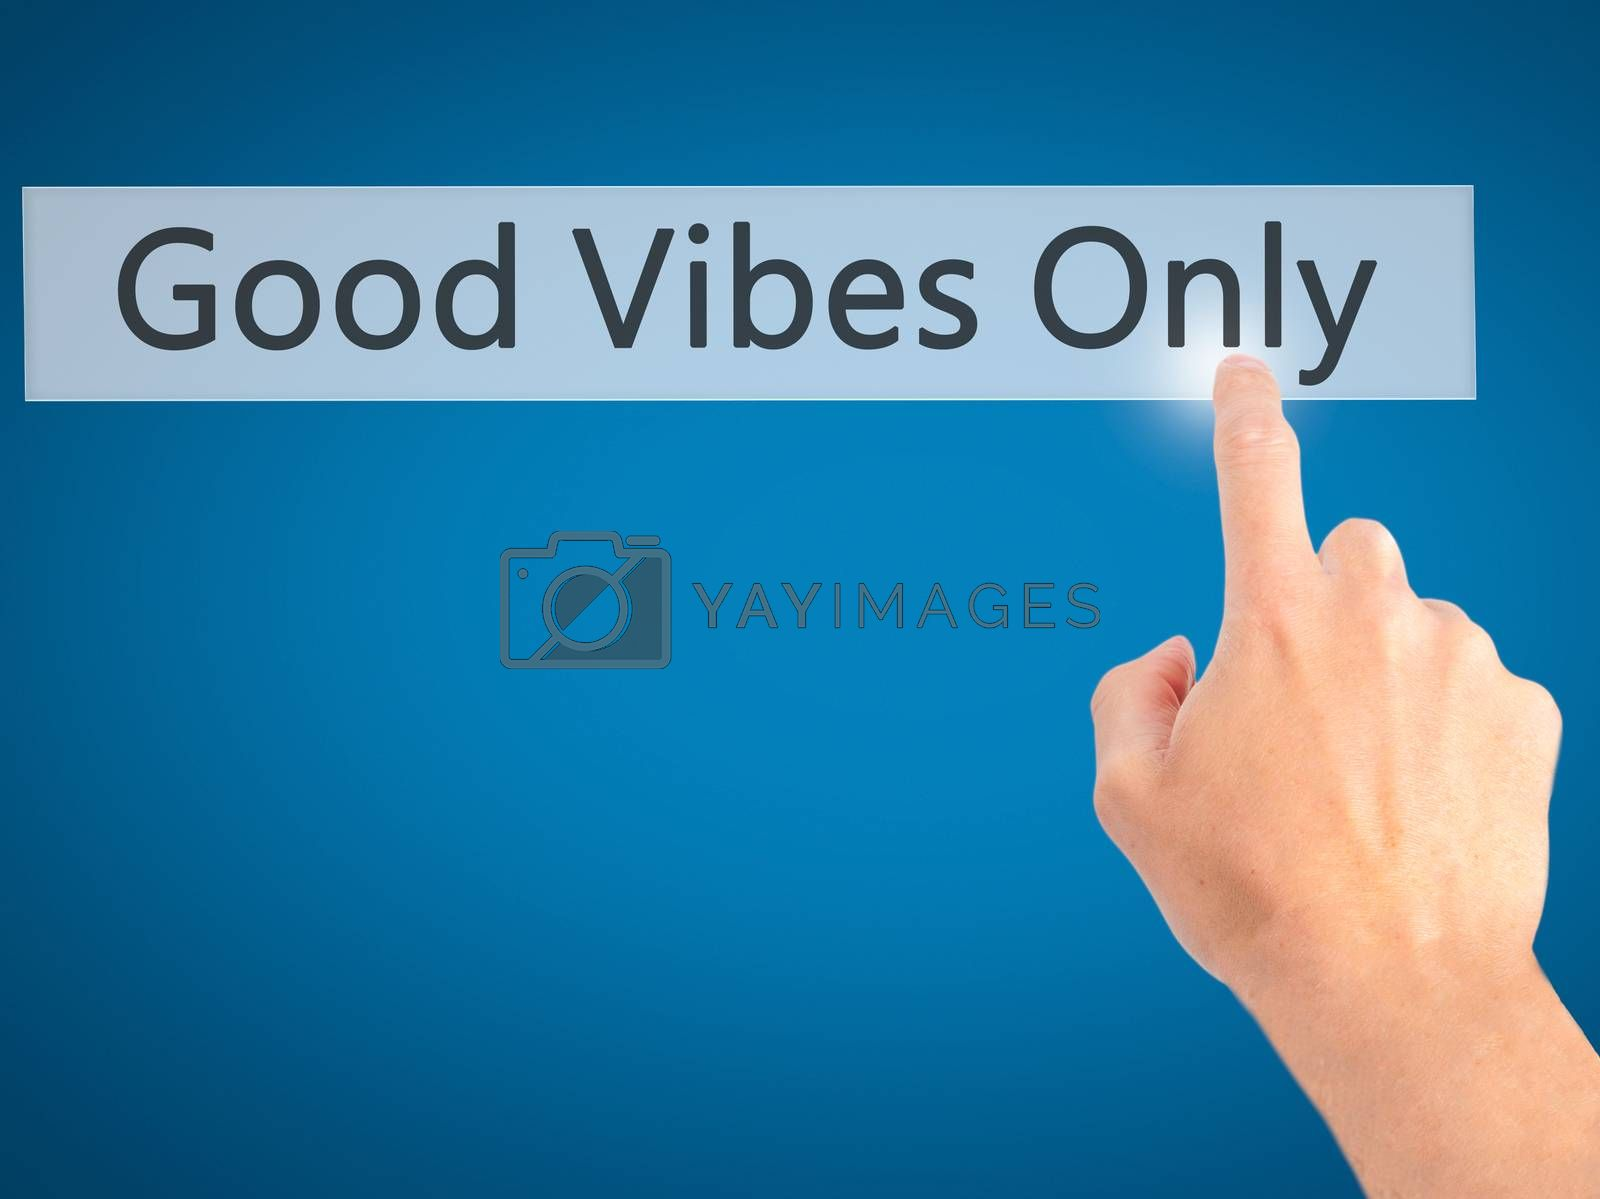 Good Vibes Only - Hand pressing a button on blurred background c by netsay.net